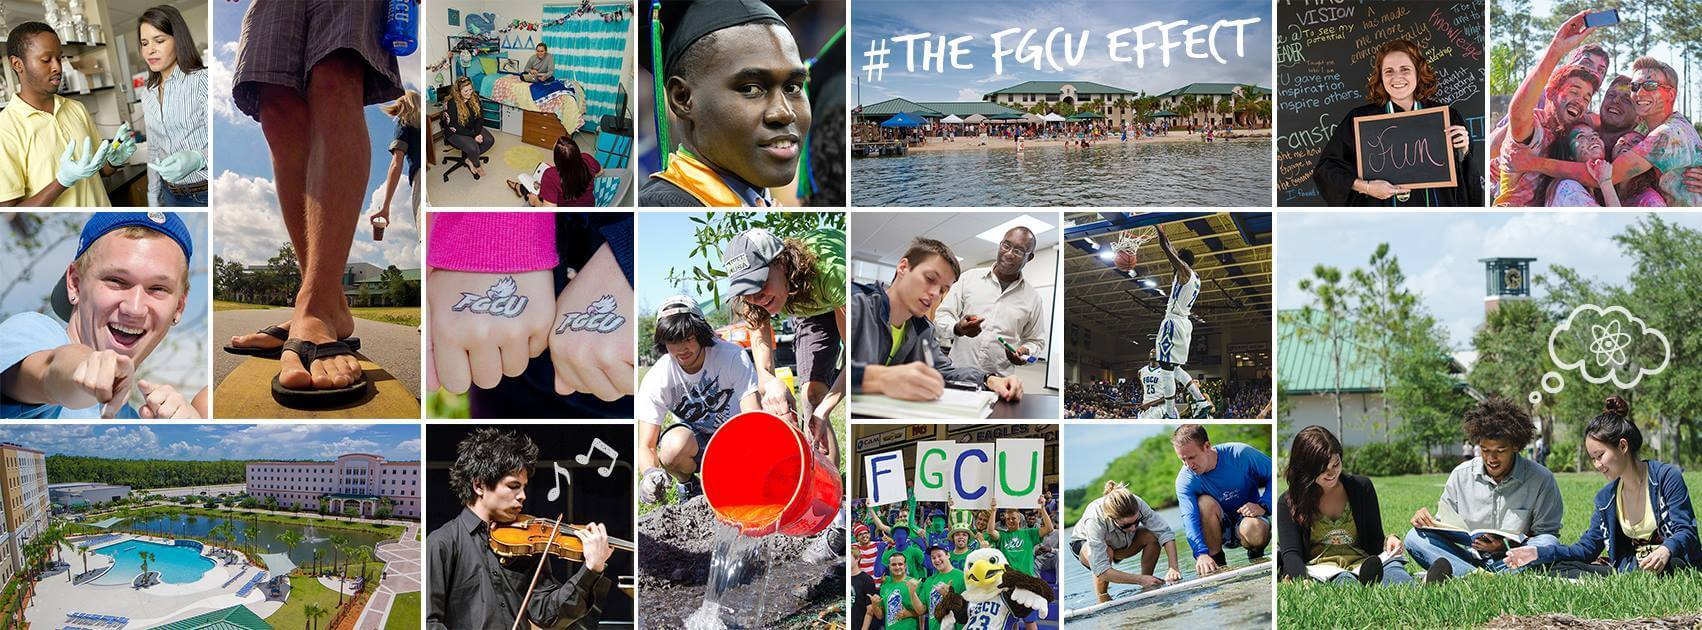 FGCU marketing to hold open casting call